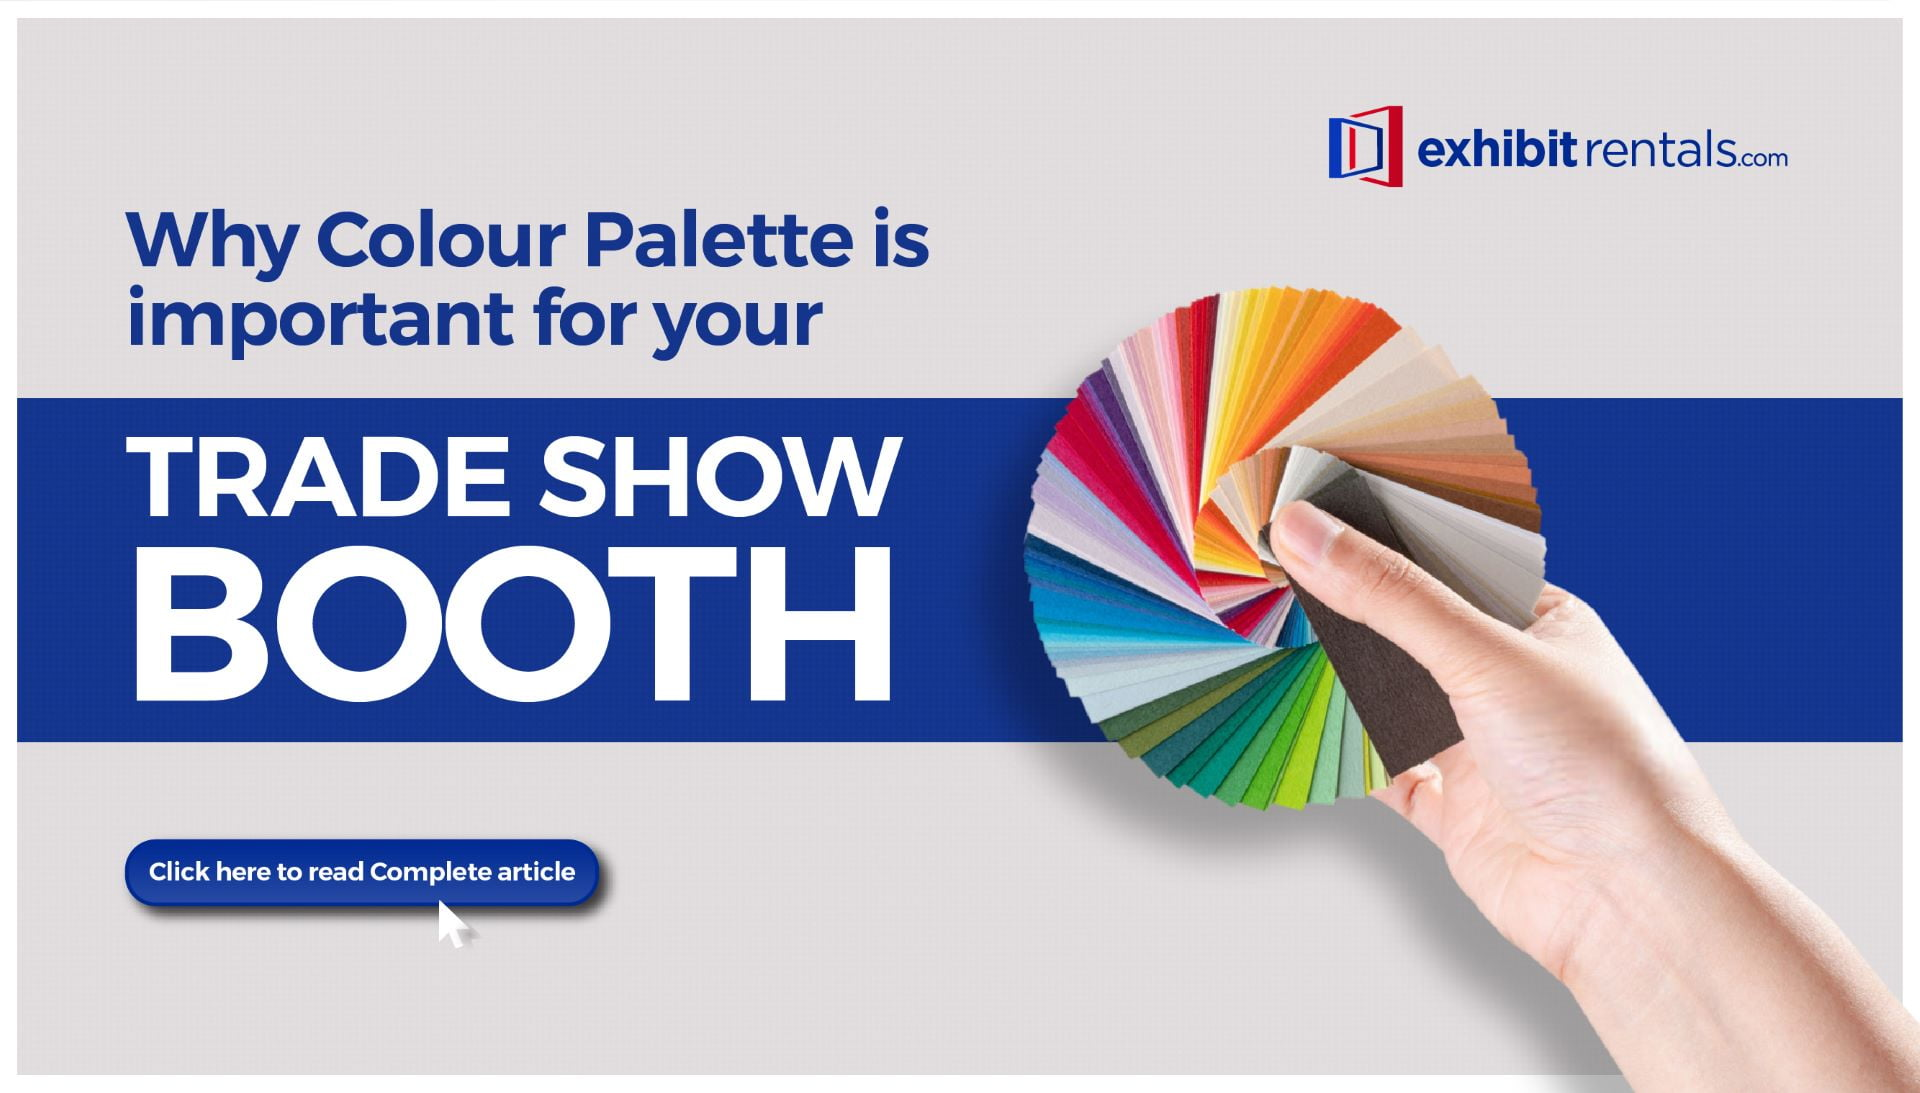 Why Colour Palette is Important for Your Trade Show Booth